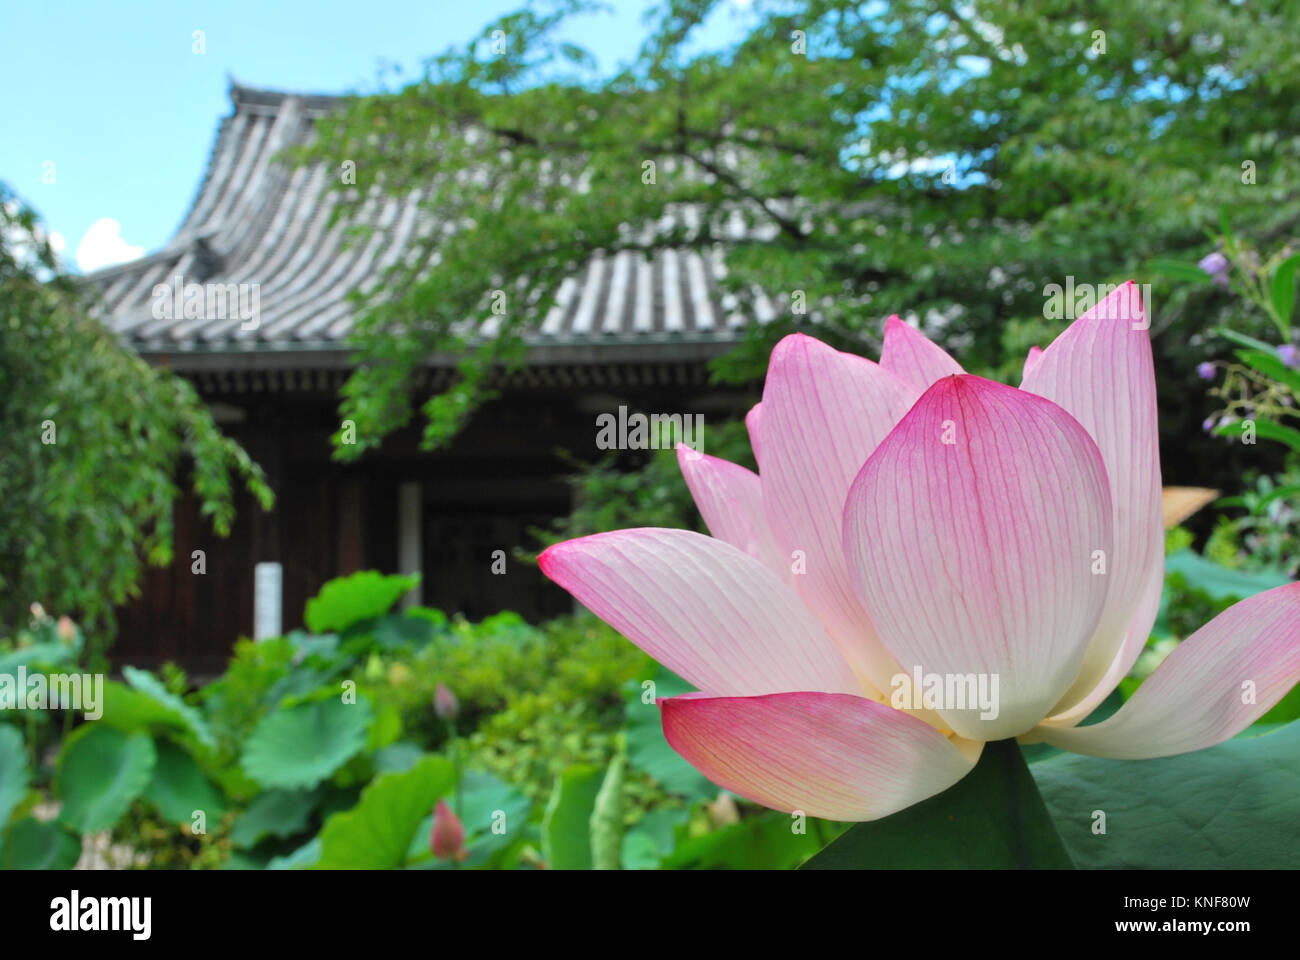 Lotus flower in full bloom with temple in the background lotus flower in full bloom with temple in the background symbolizing religion buddhism purity serenity zen the summer season buddha enlightenm izmirmasajfo